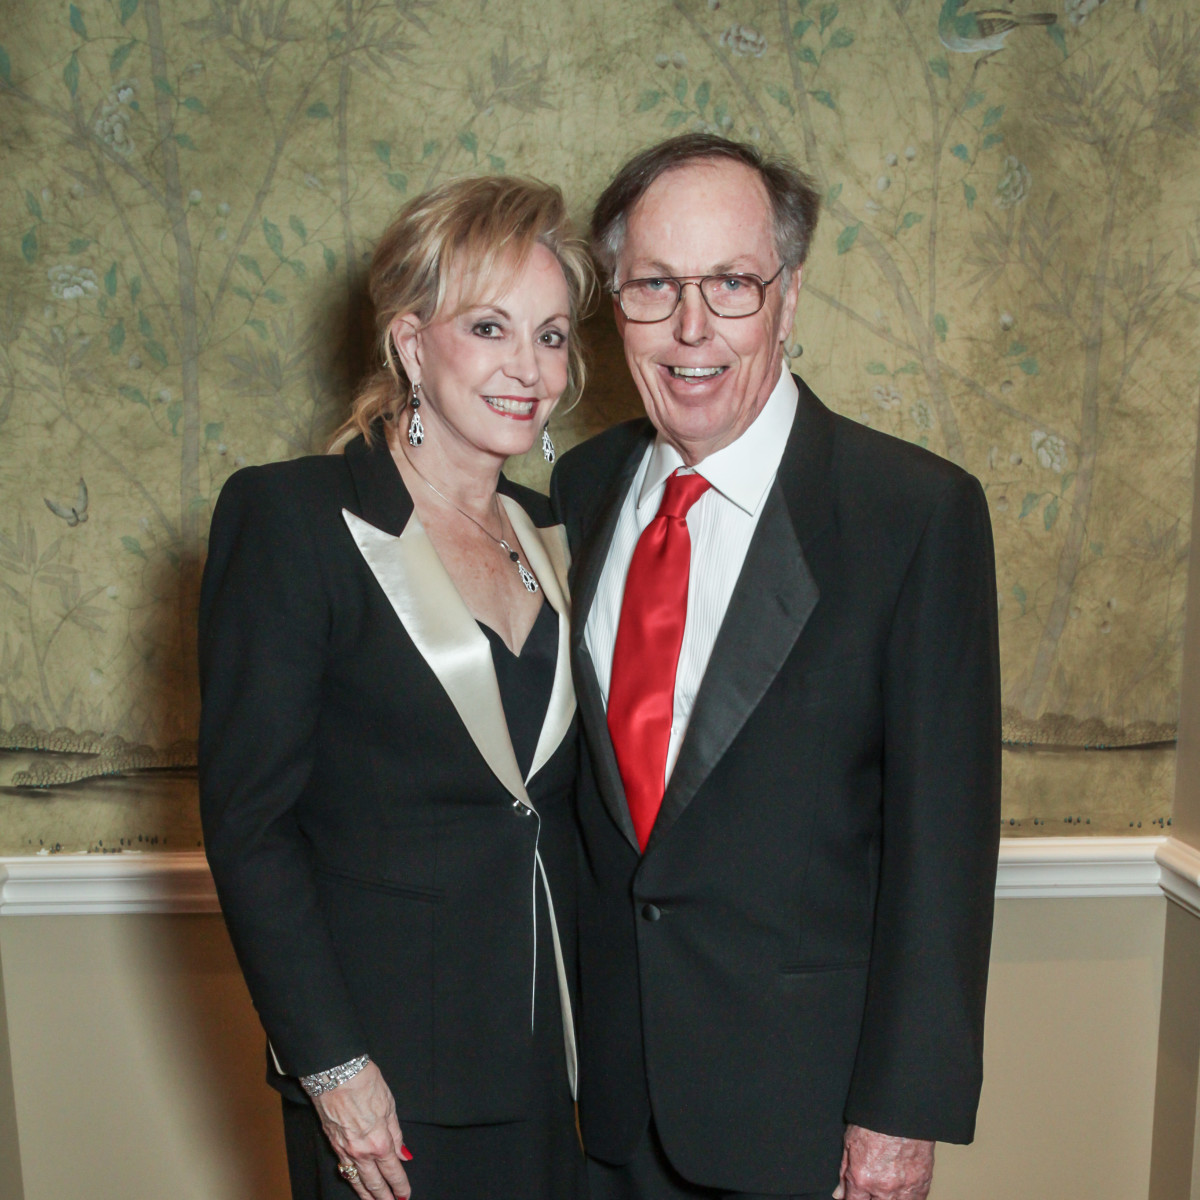 Champagne & Chocolat gala, Feb. 2016, Jane Page Crump, James Crump